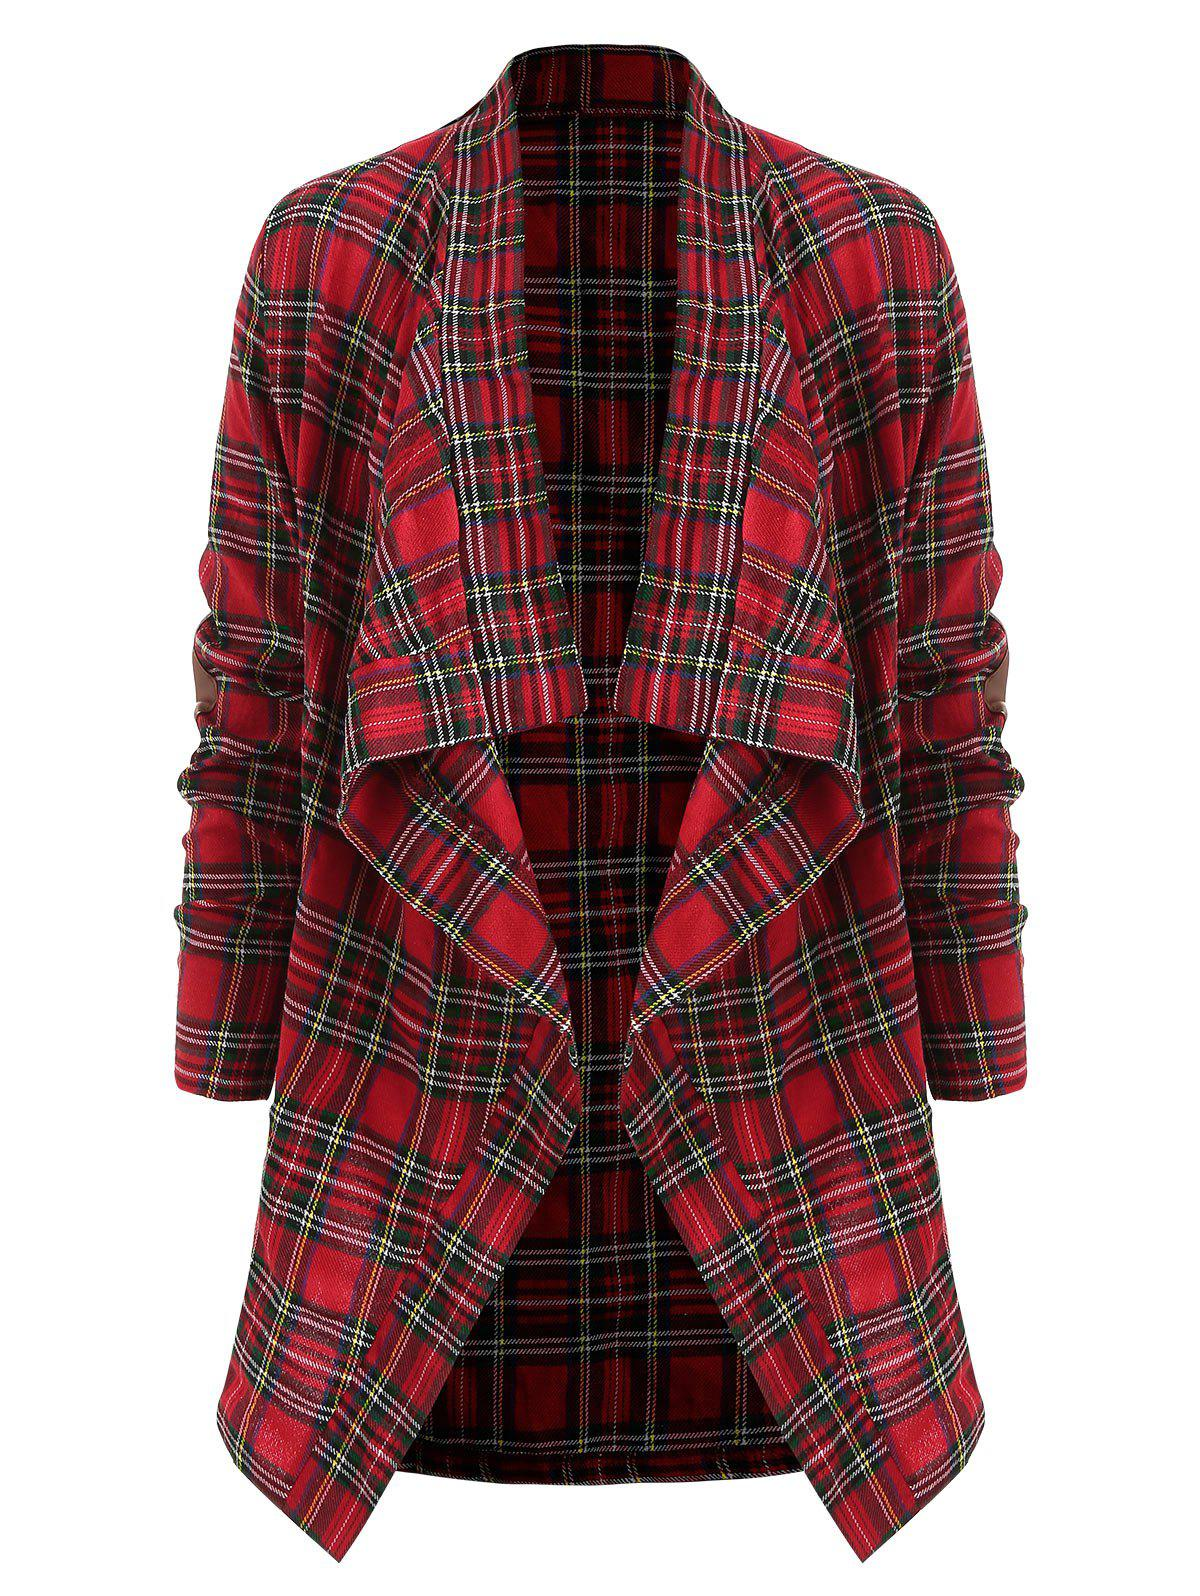 Elbow Patch Waterfall Plaid Shirt - RED M